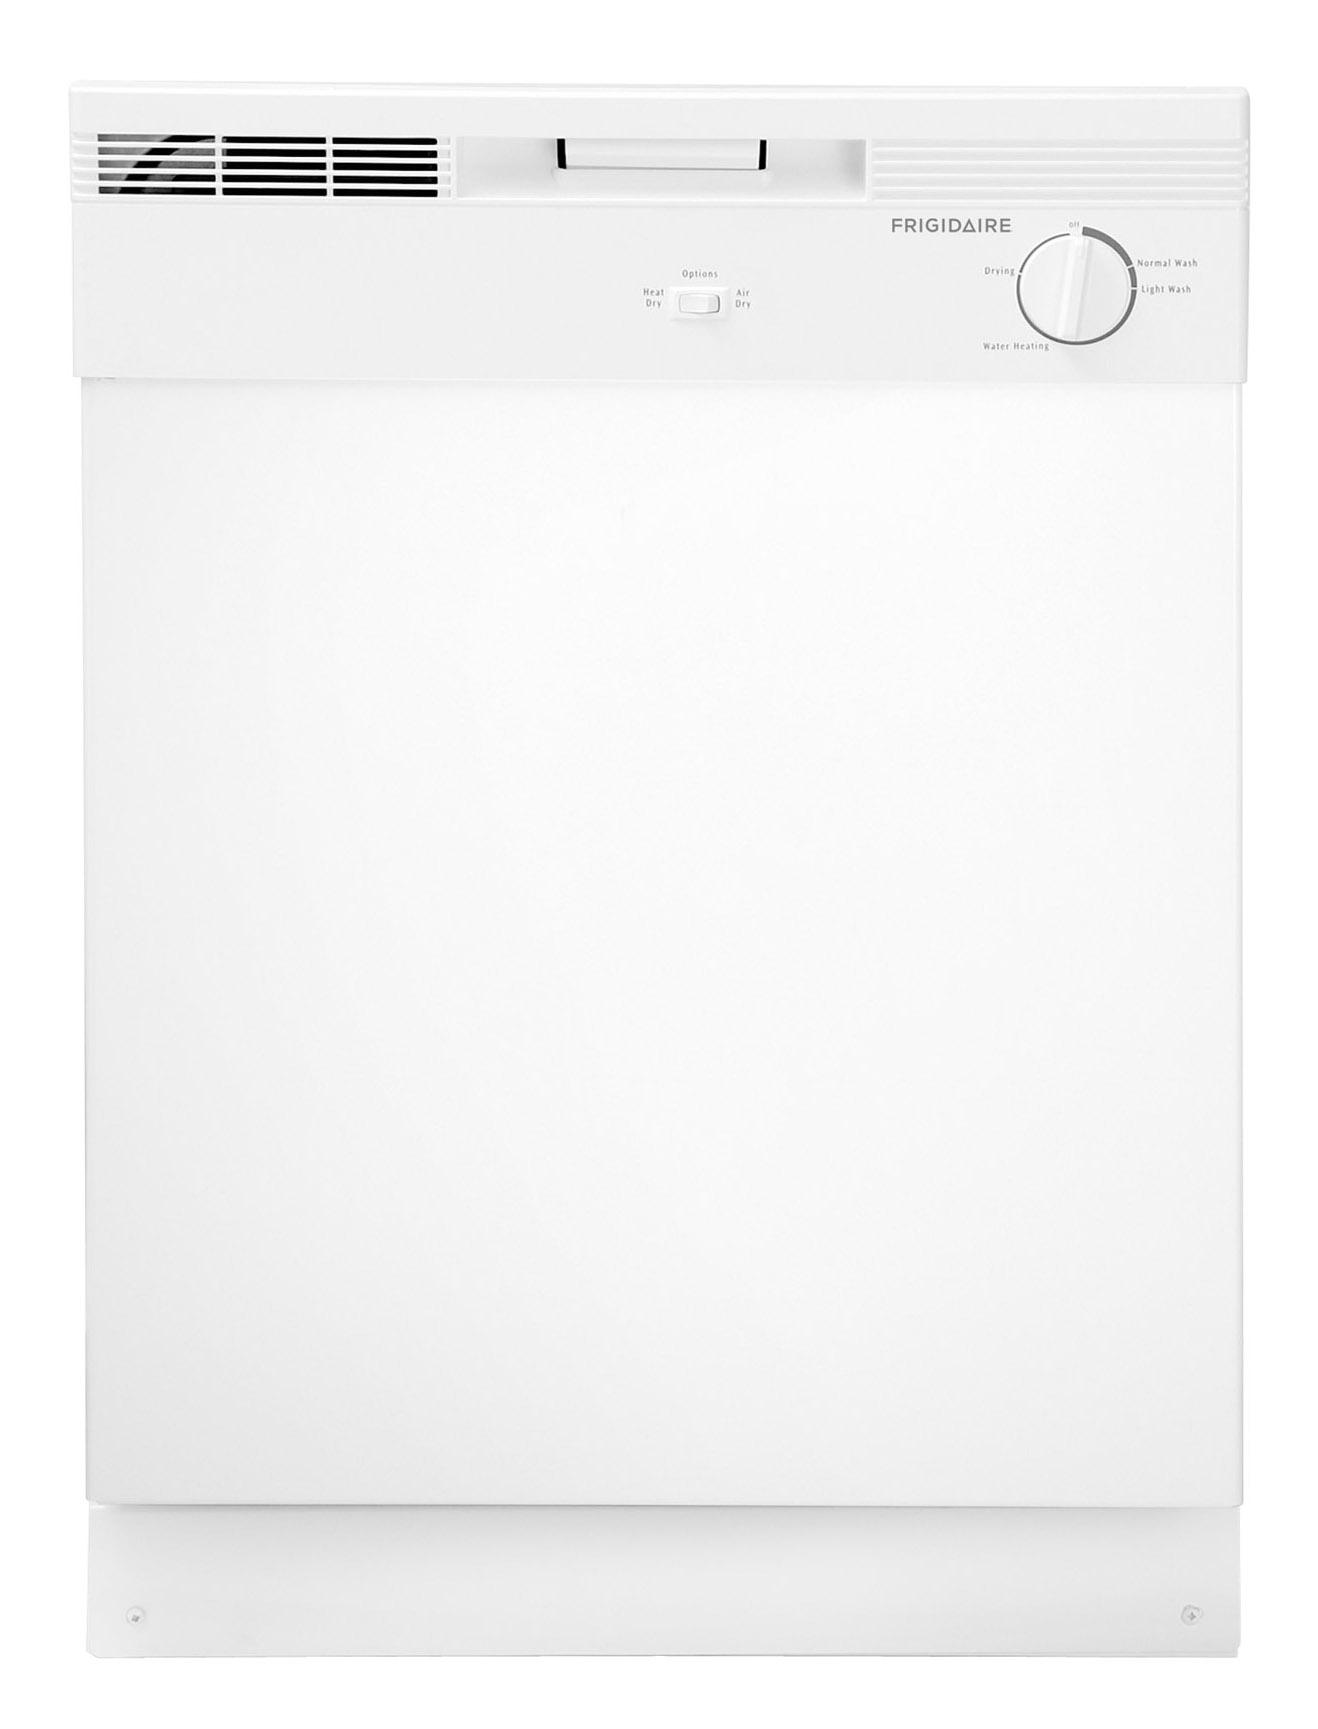 "Frigidaire Dishwashers 24"" Built-In Tall Tub Dishwasher - Item Number: FBD2400KW"